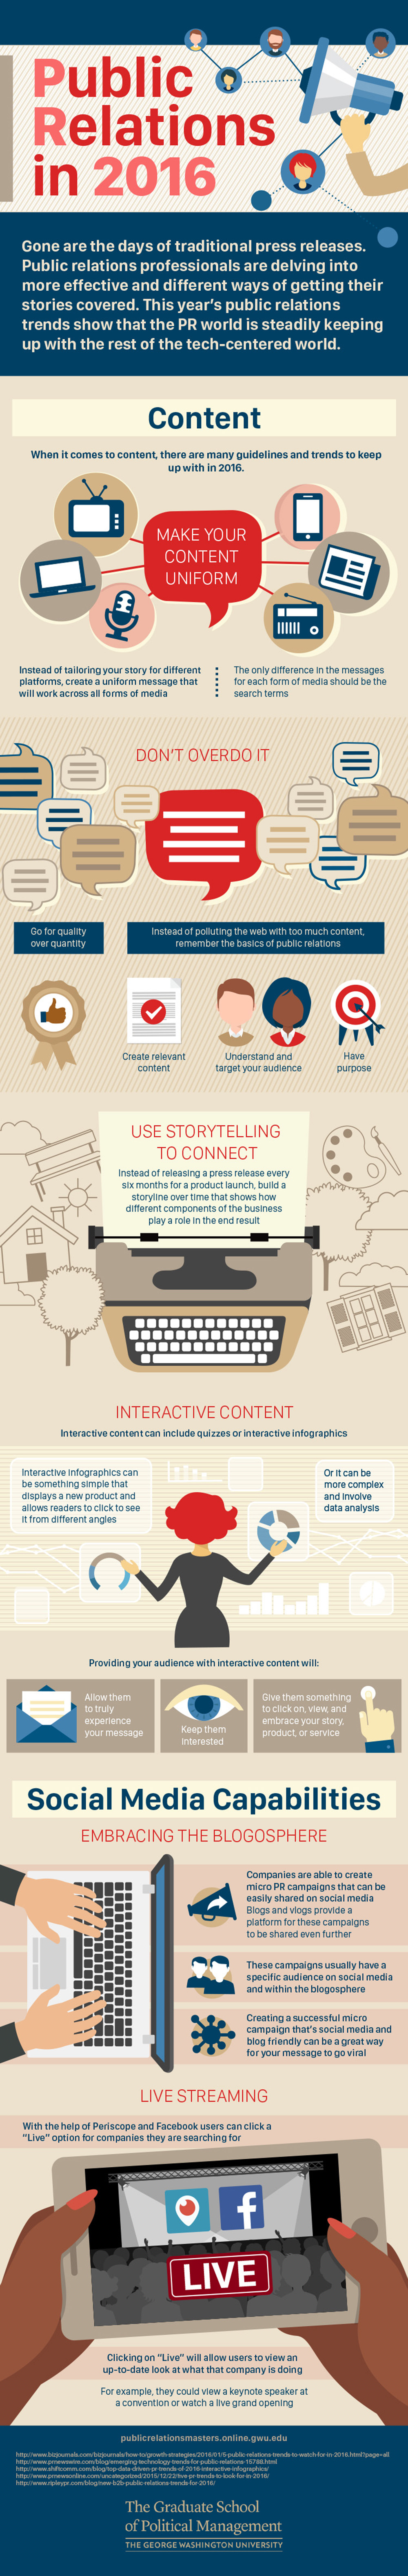 An infographic about Public Relations in 2016 by the George Washington University.